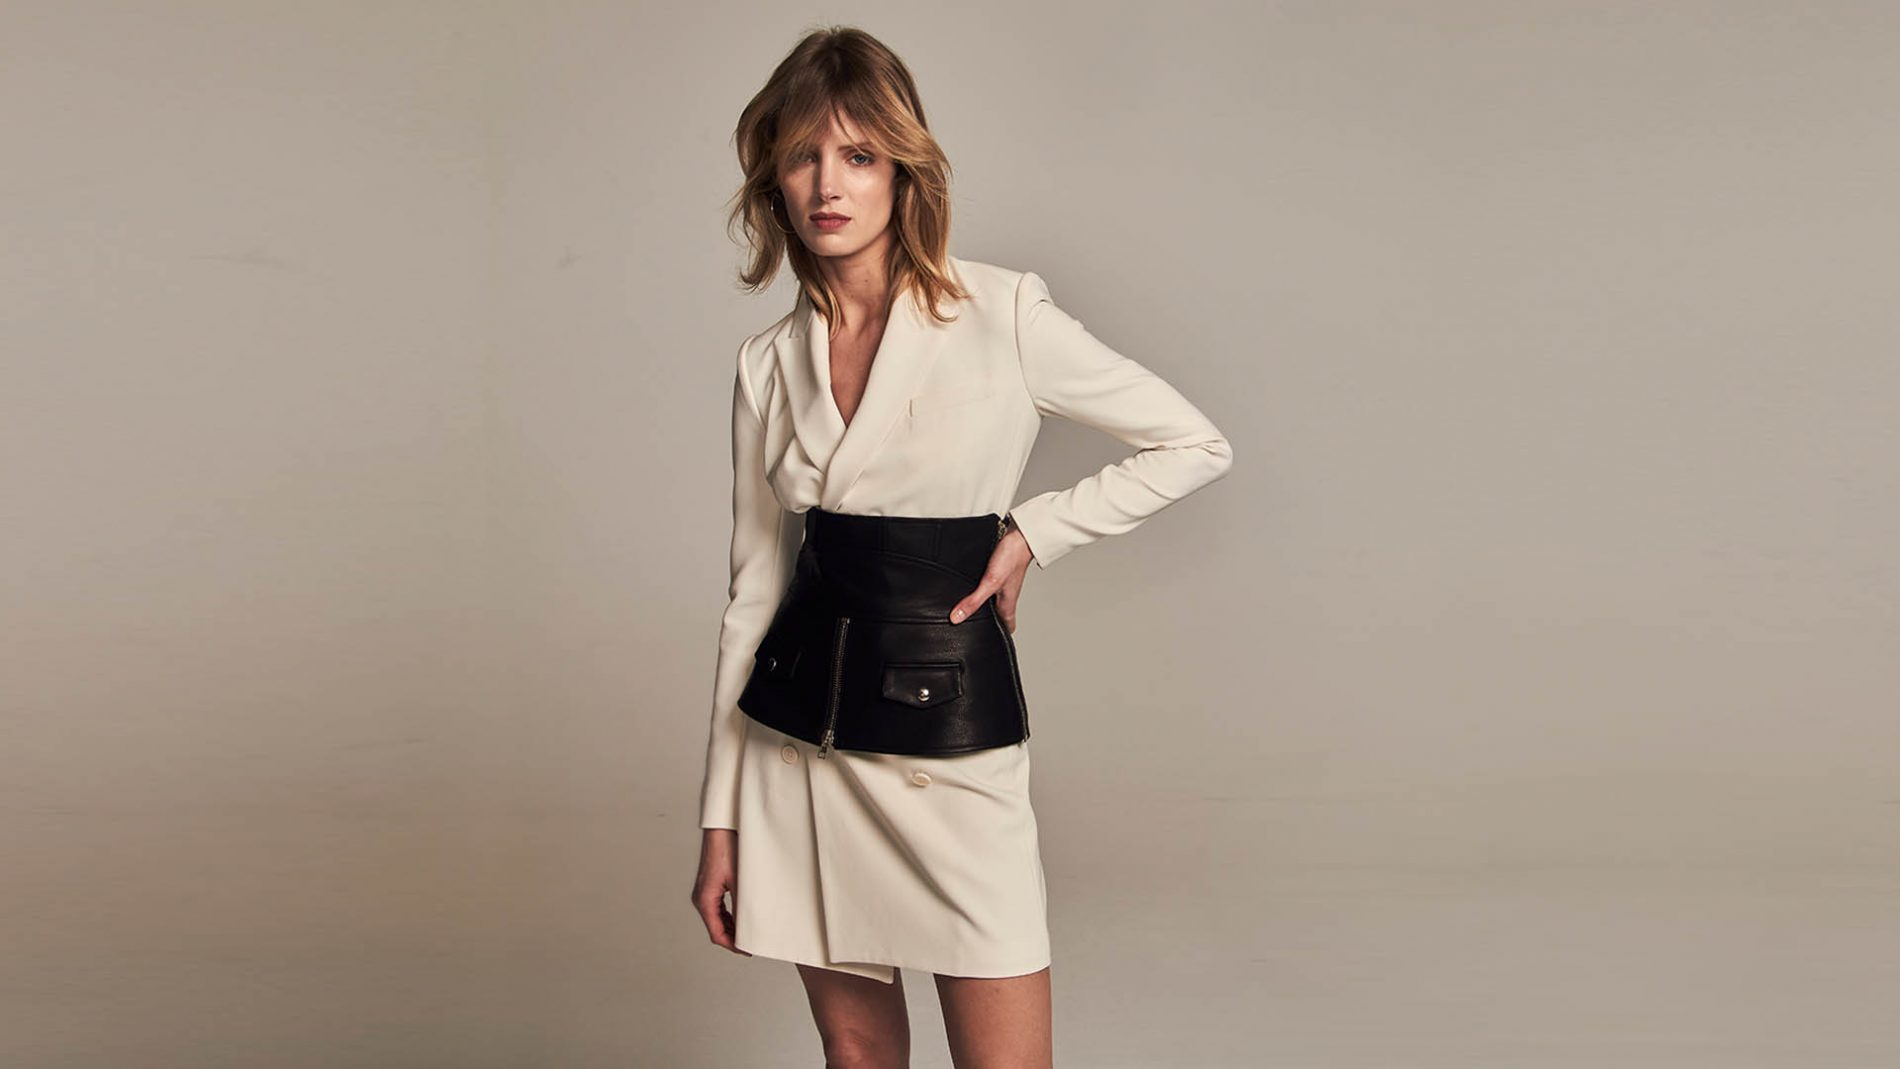 El Corte Inglés Ready-To-Wear Theory Alexander Wang